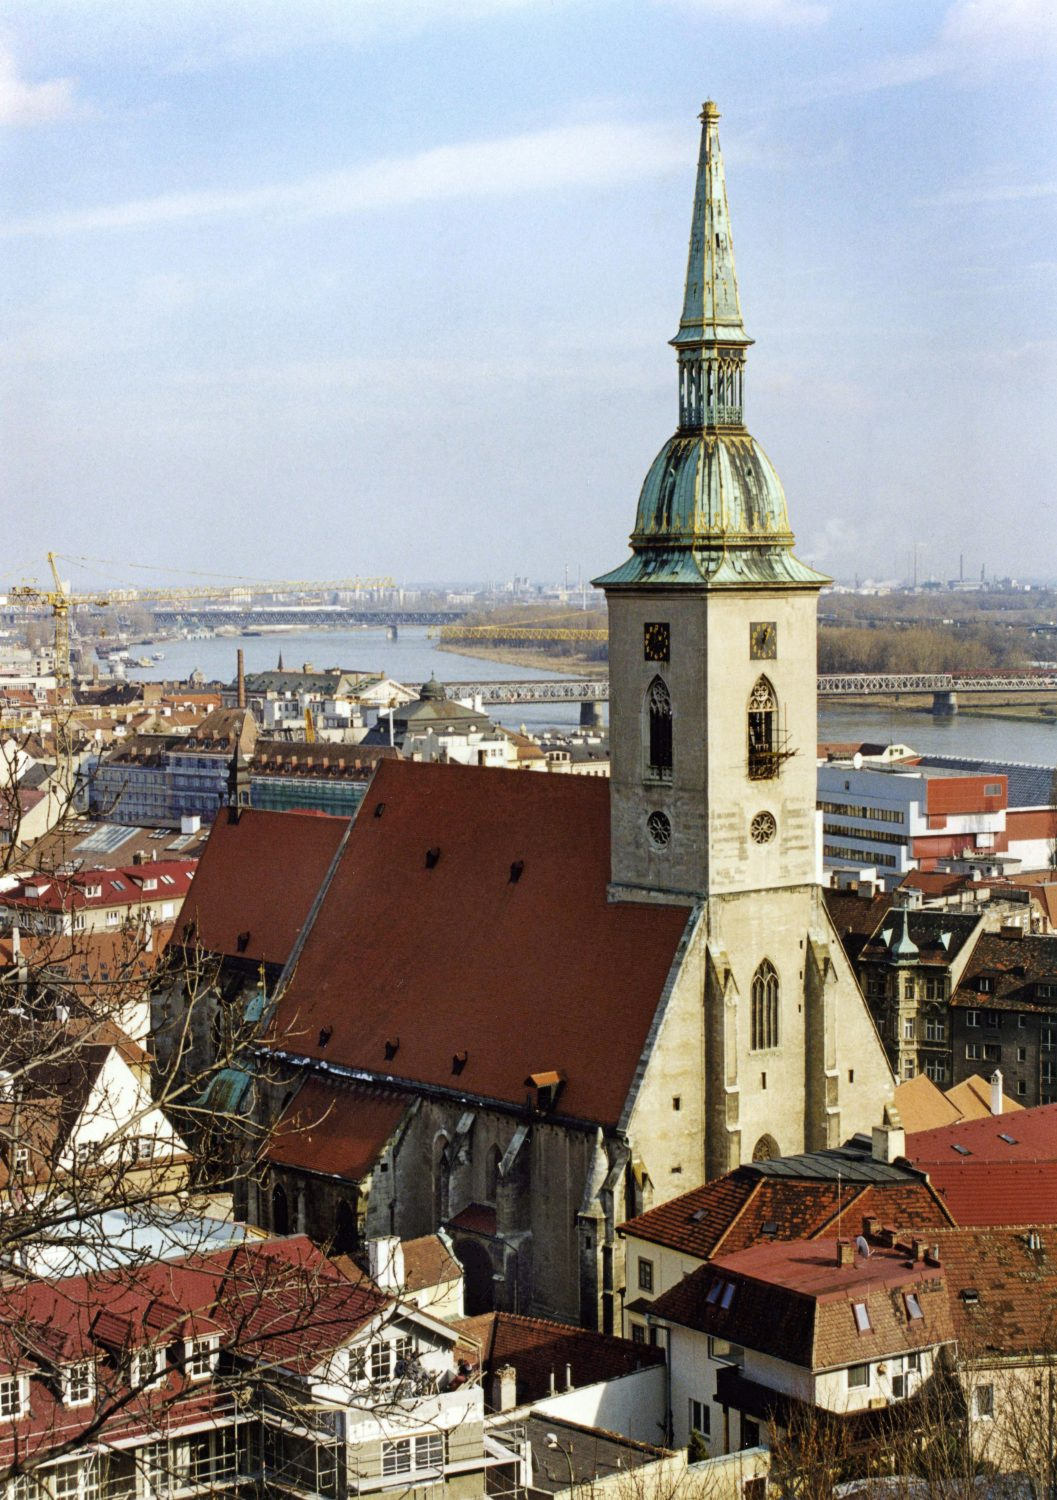 St. Martin's Cathedral, Bratislava (photo by Peter Fratrič)